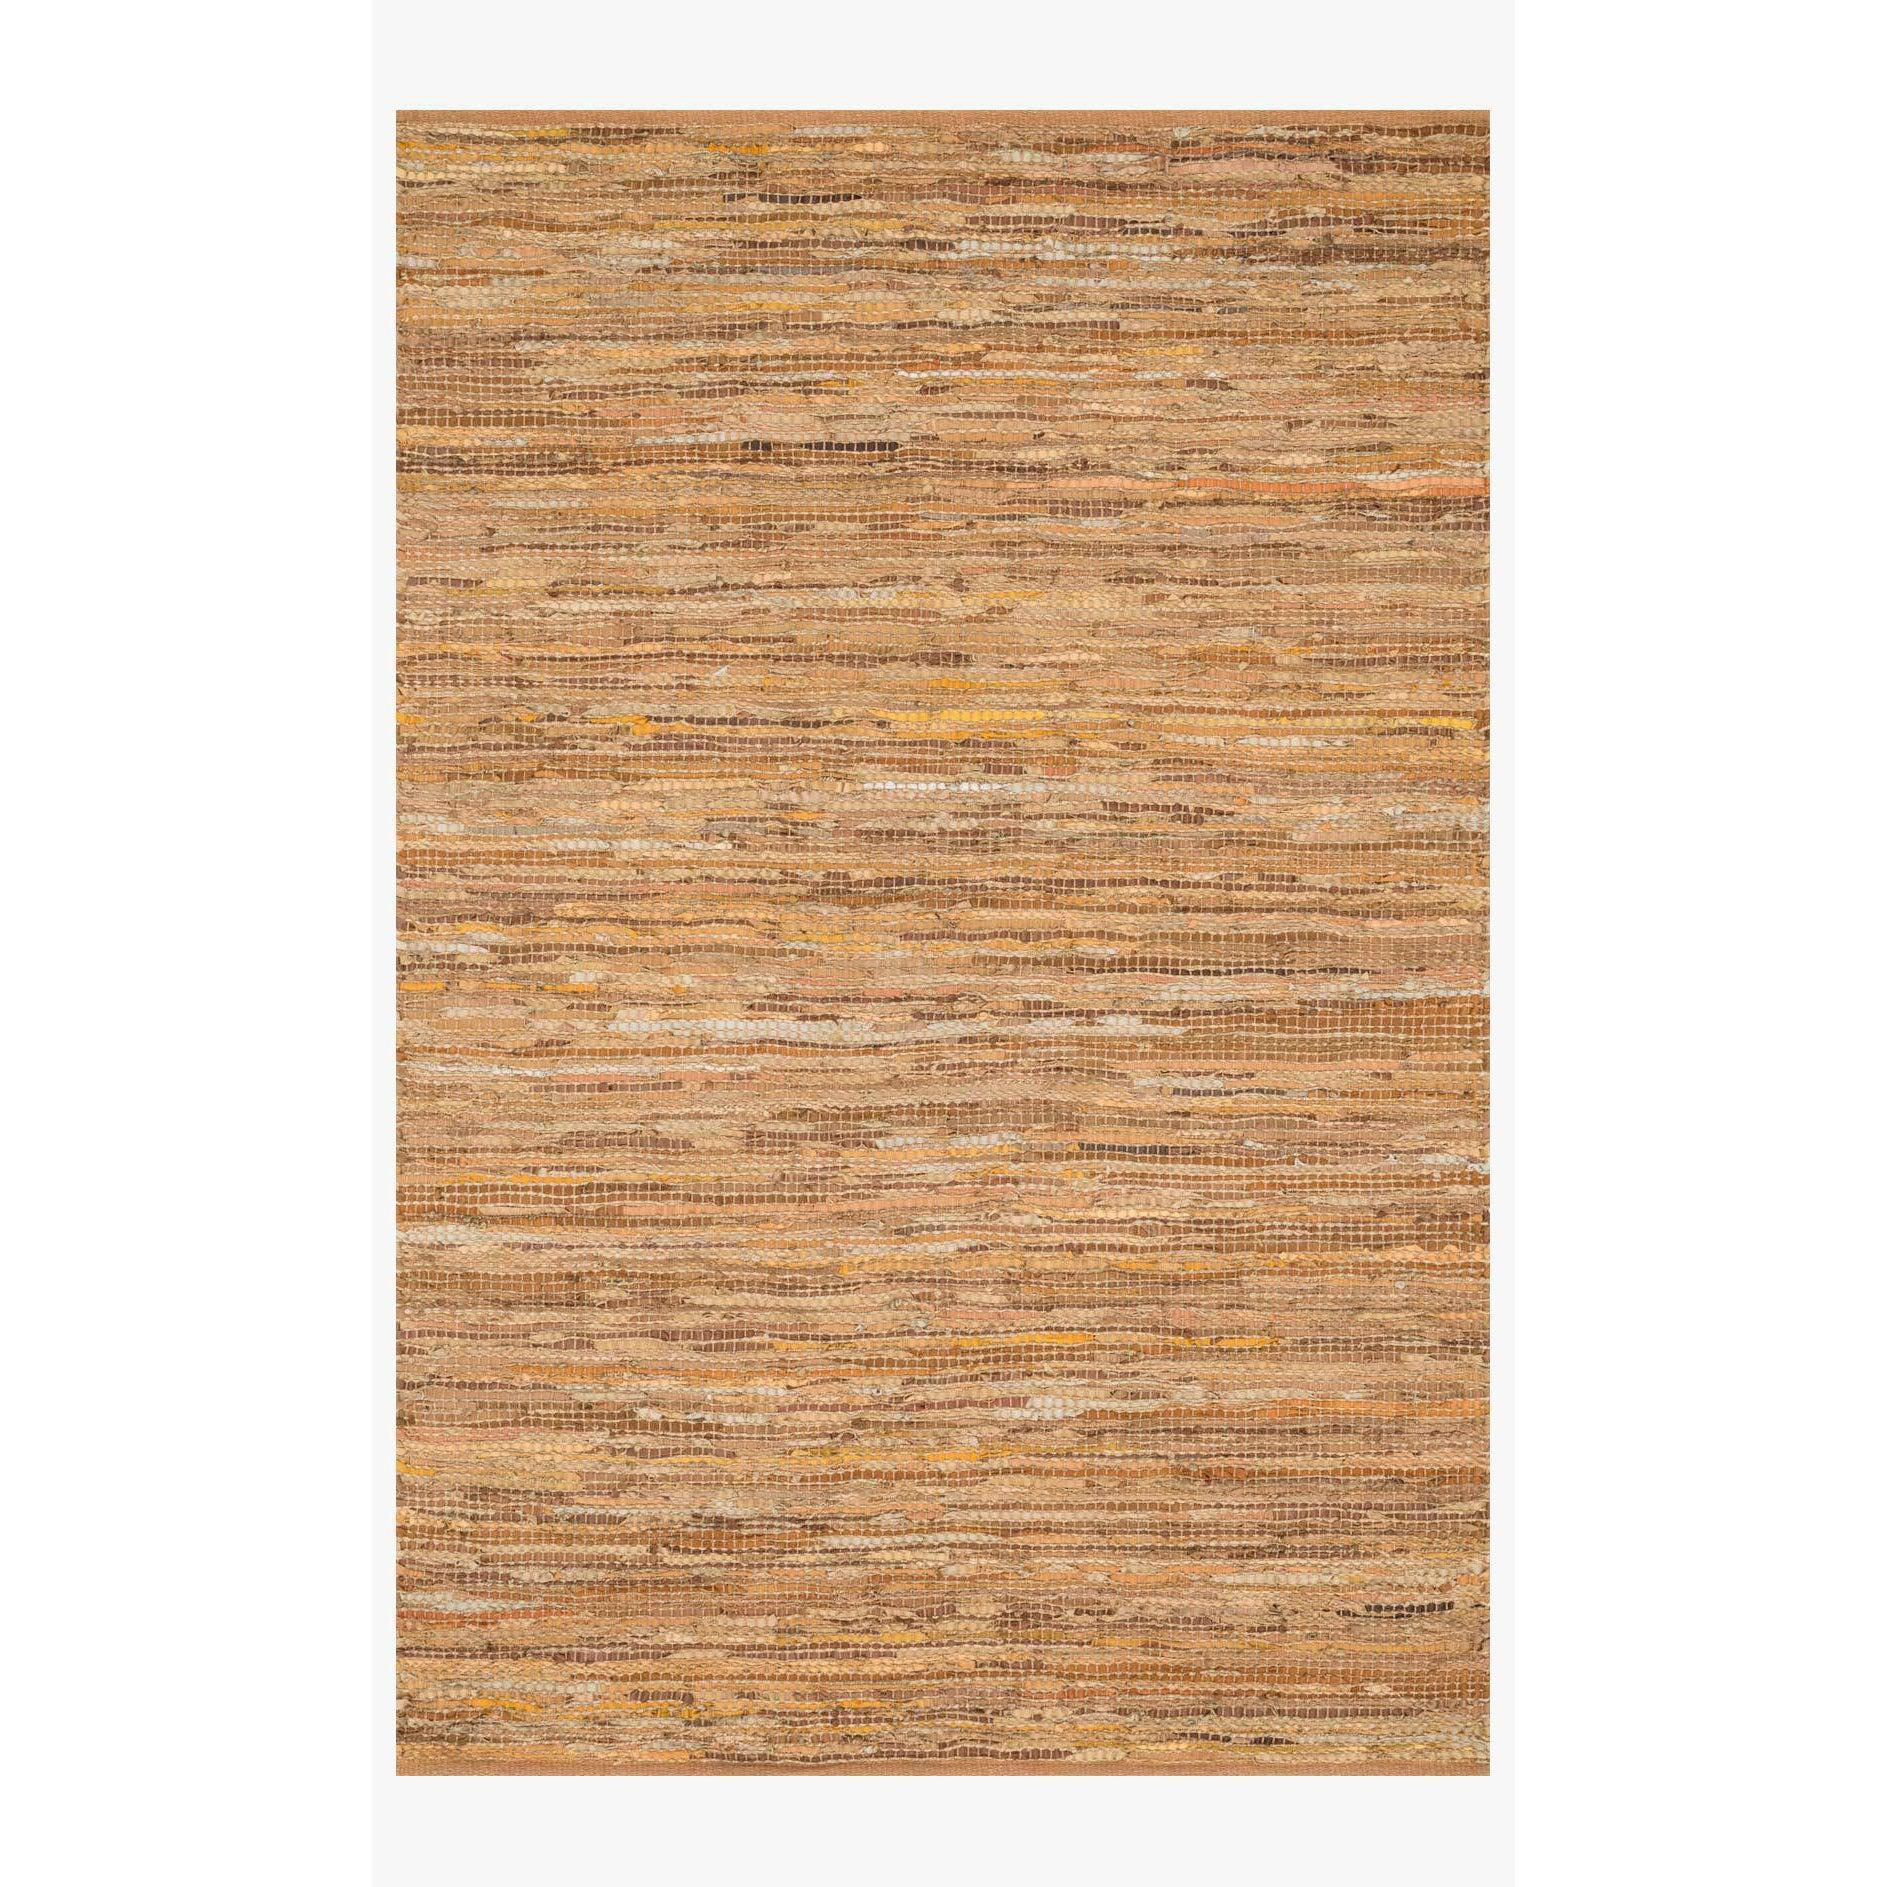 Edge Rug by Loloi Rugs - ED-01 - Tan